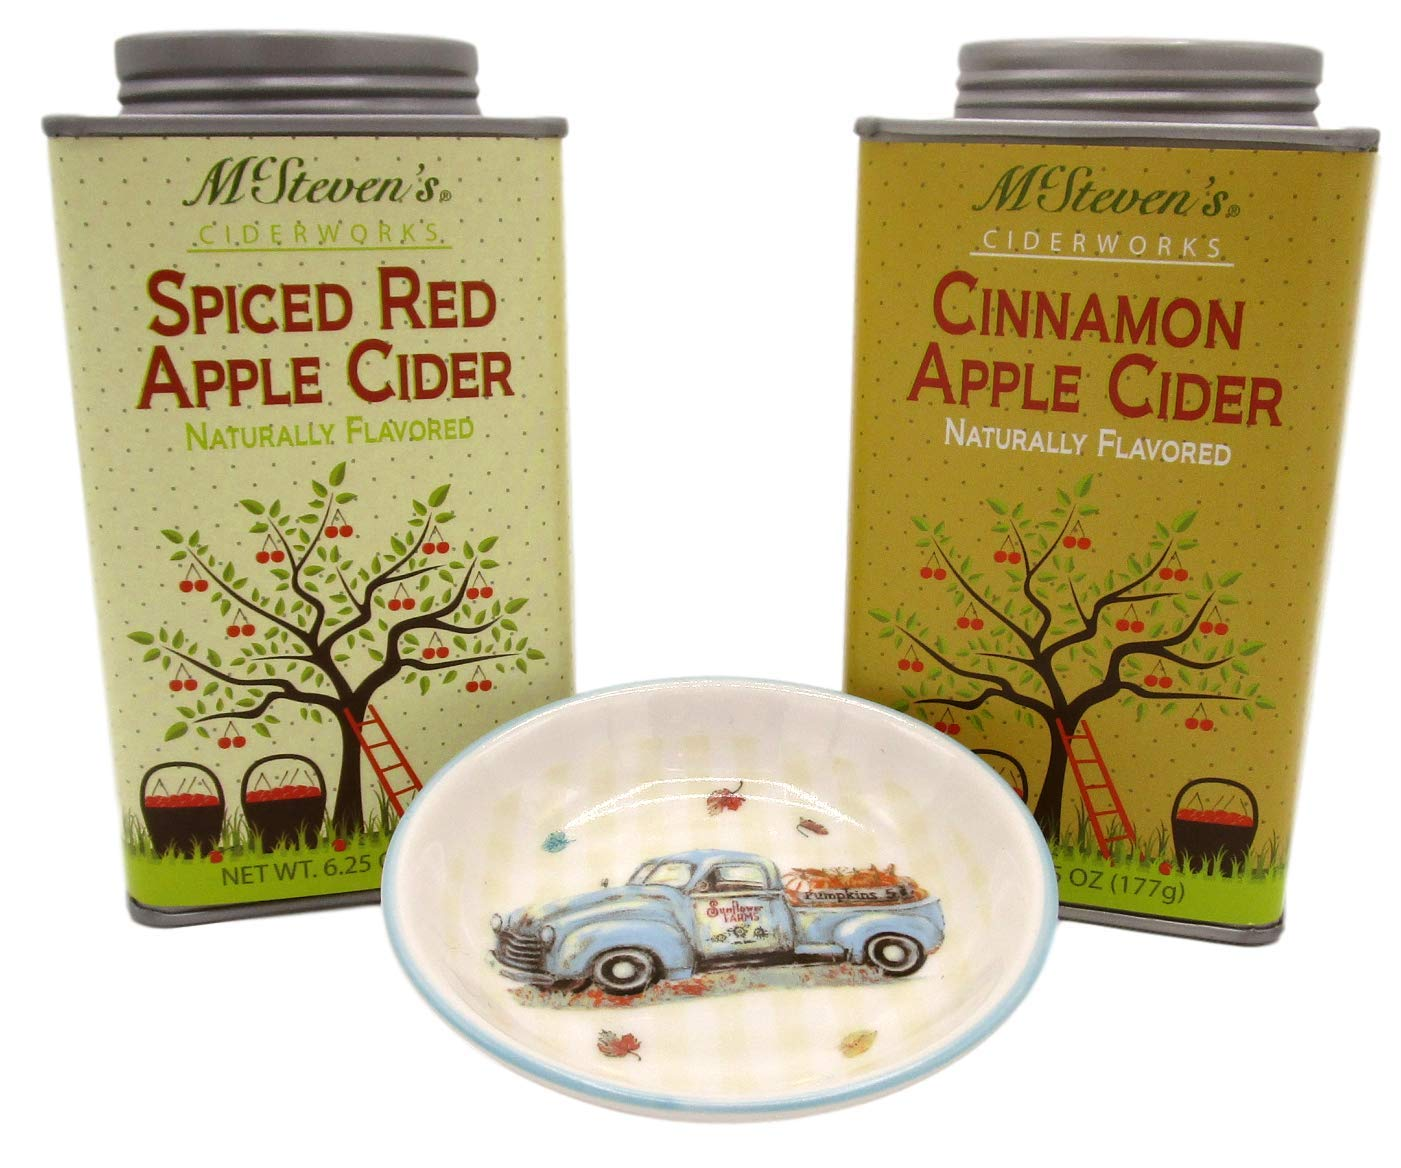 Fall Flavors Hot Drink Mix Bundles (#1 Apple Cider - Spiced Red and Cinnamon)